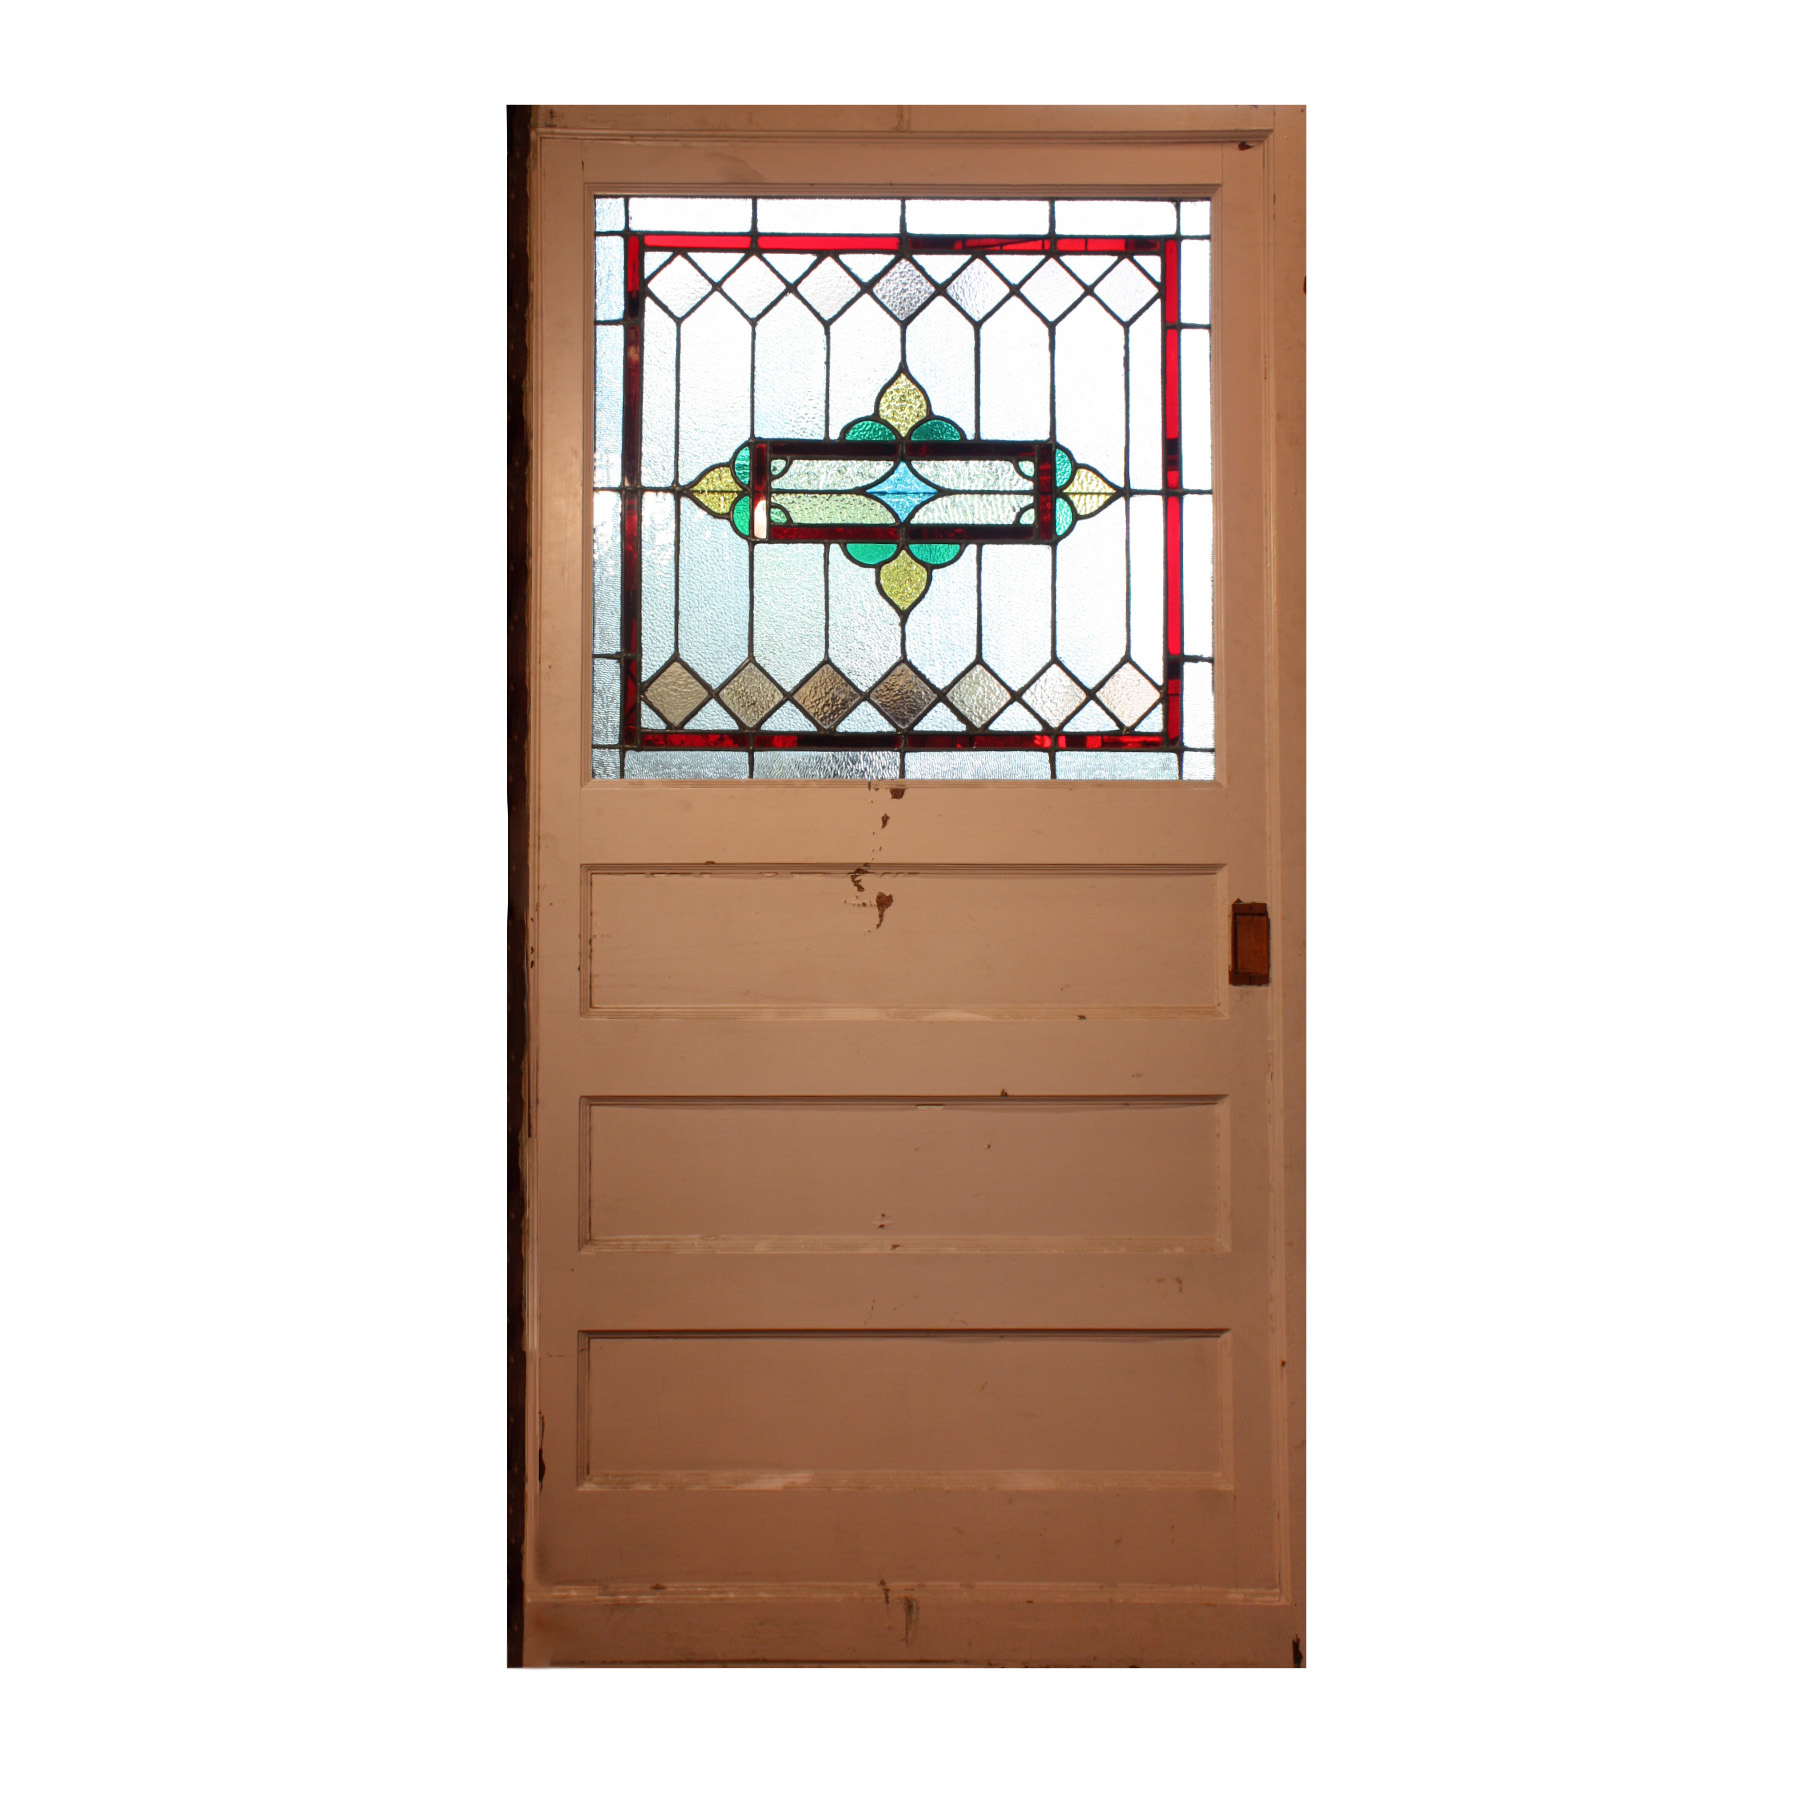 Stained glass pocket doors stained glass pocket doors at for Glass pocket doors for sale